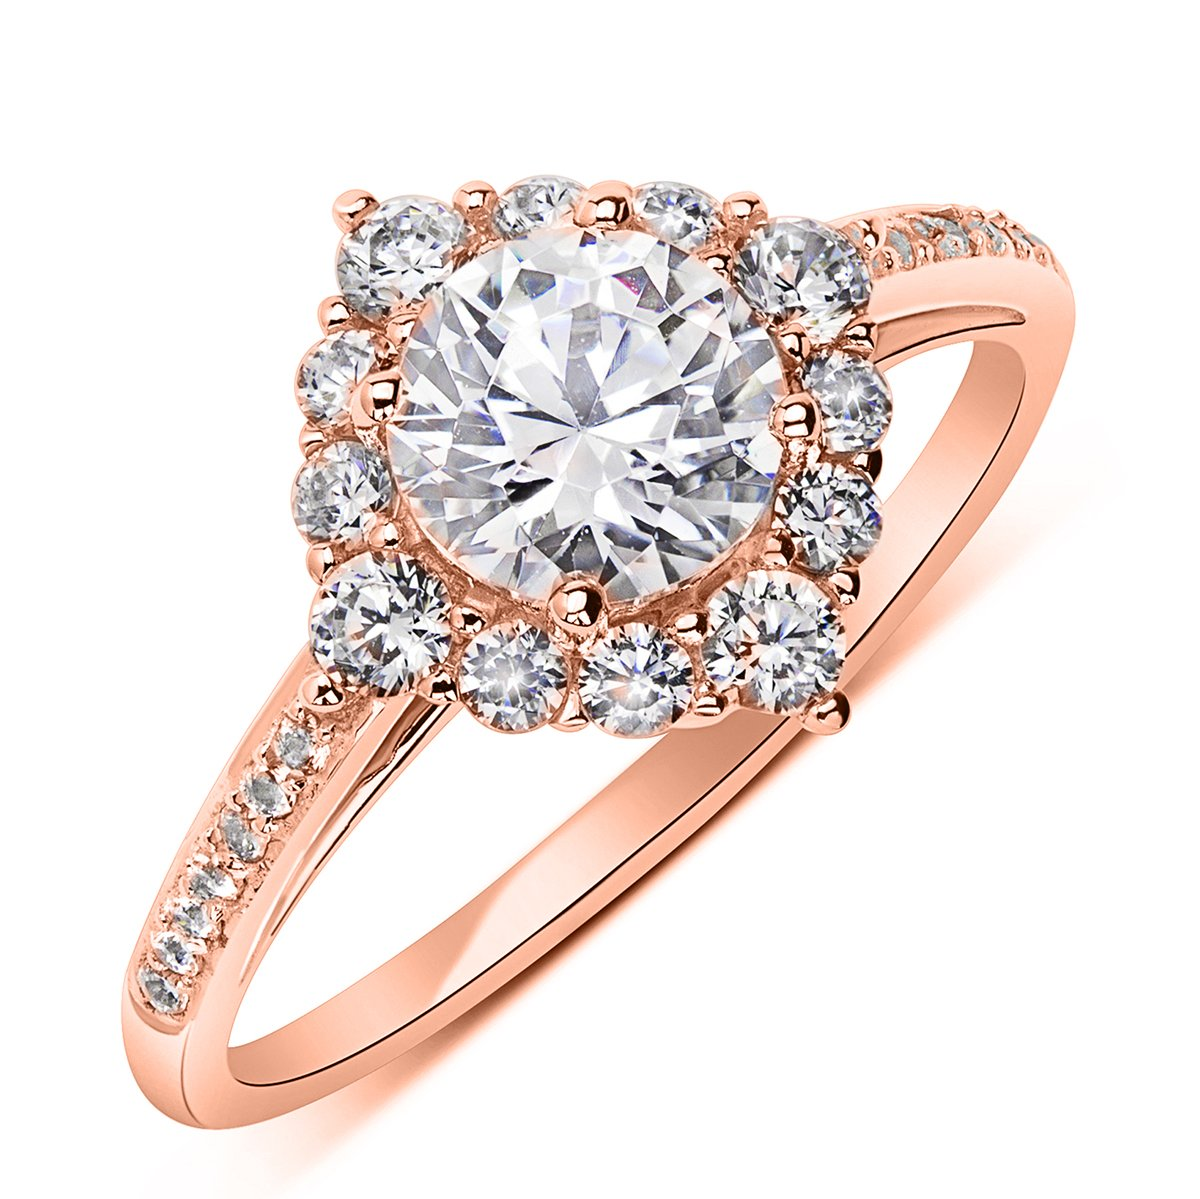 14K Rose Gold 1.2 cttw Round CZ Solitaire Wedding Engagement Halo Ring, 9